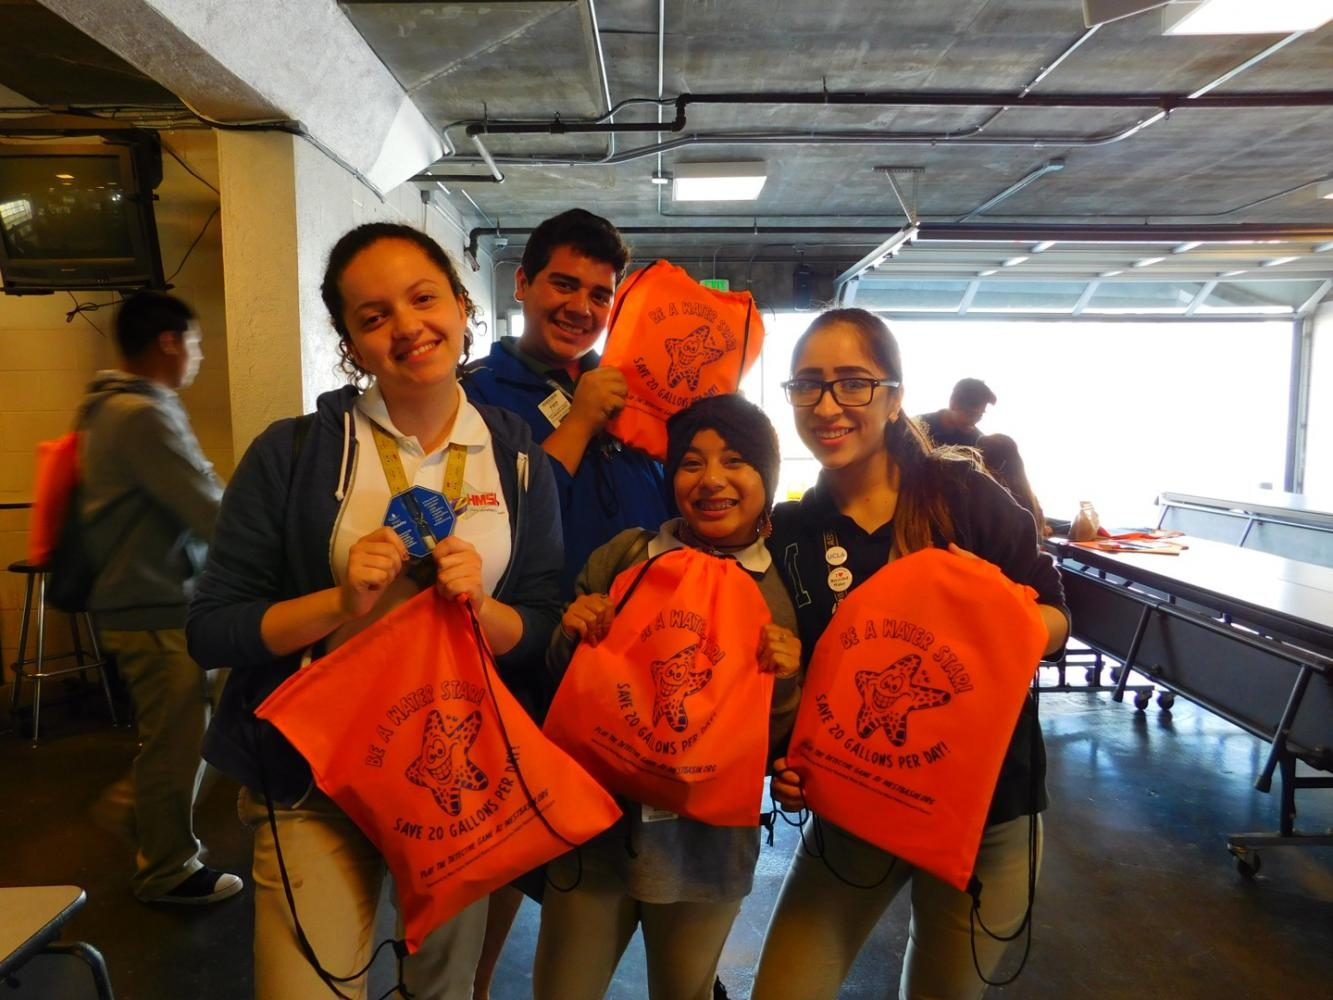 Students receive Water Basin bags.